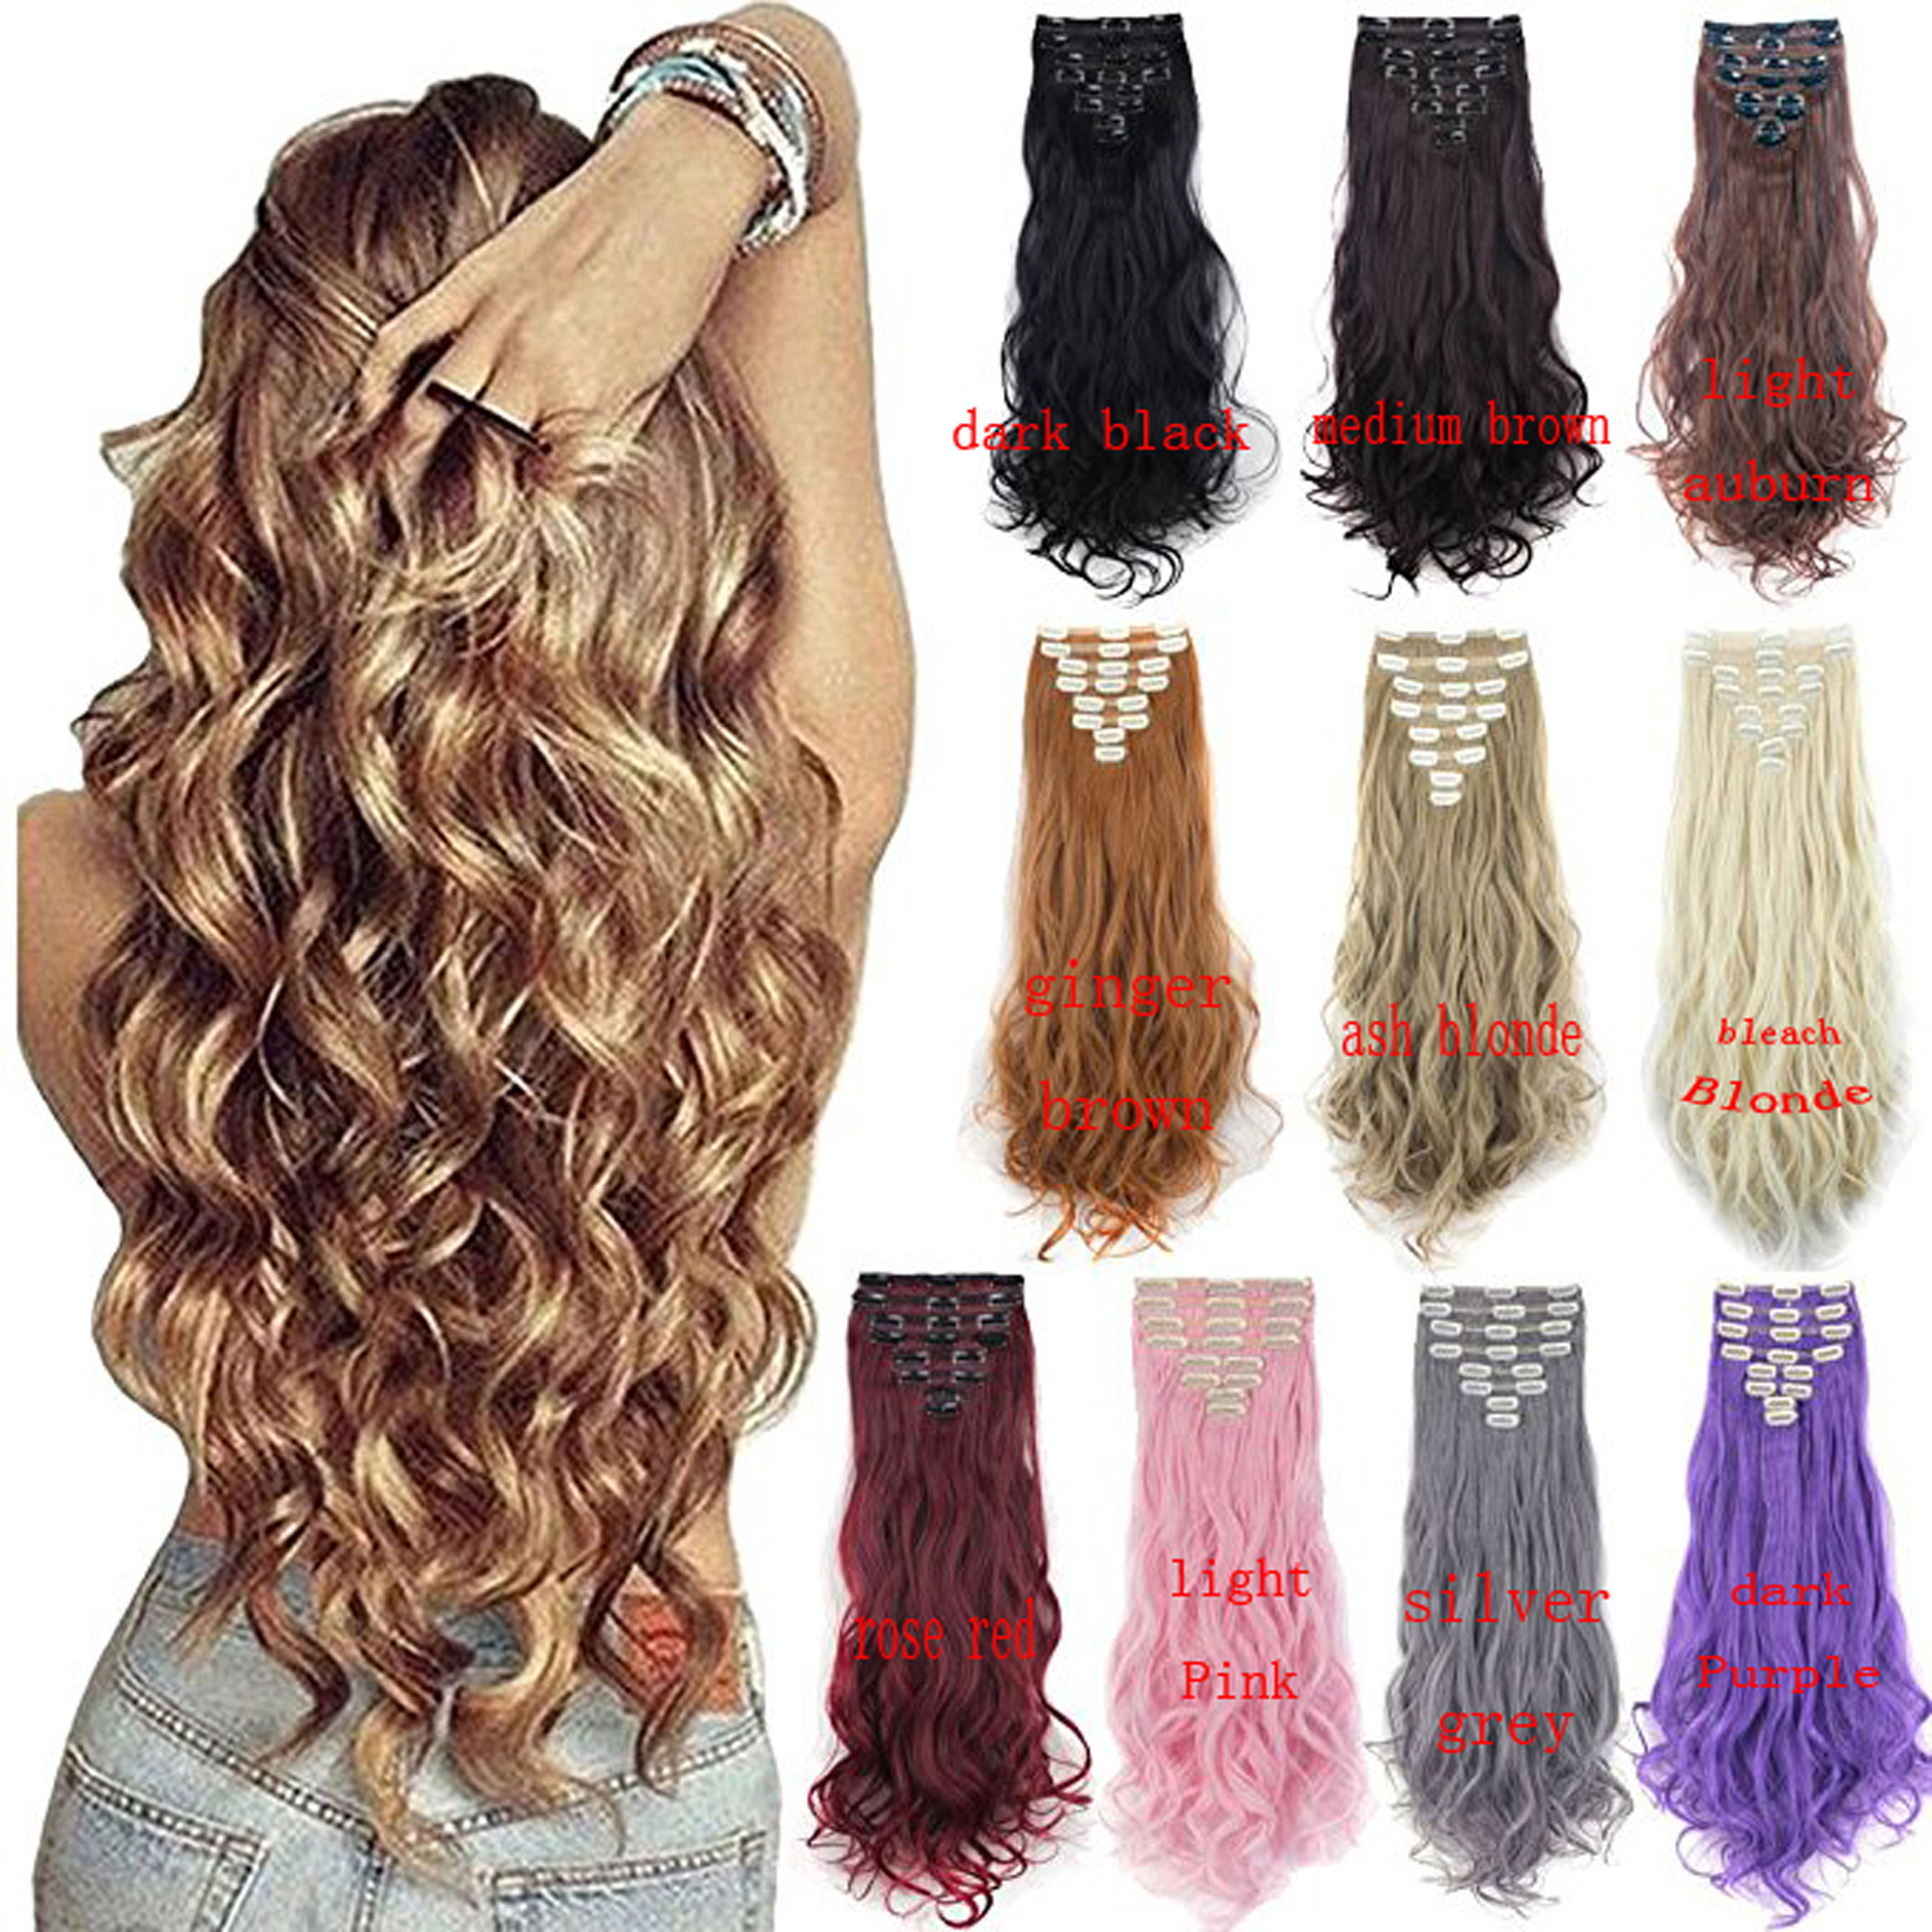 """FLORATA 24"""" Curly Wave Clips in Synthetic Hair Extensions Hair pieces for Women double weft 8 piece full head"""